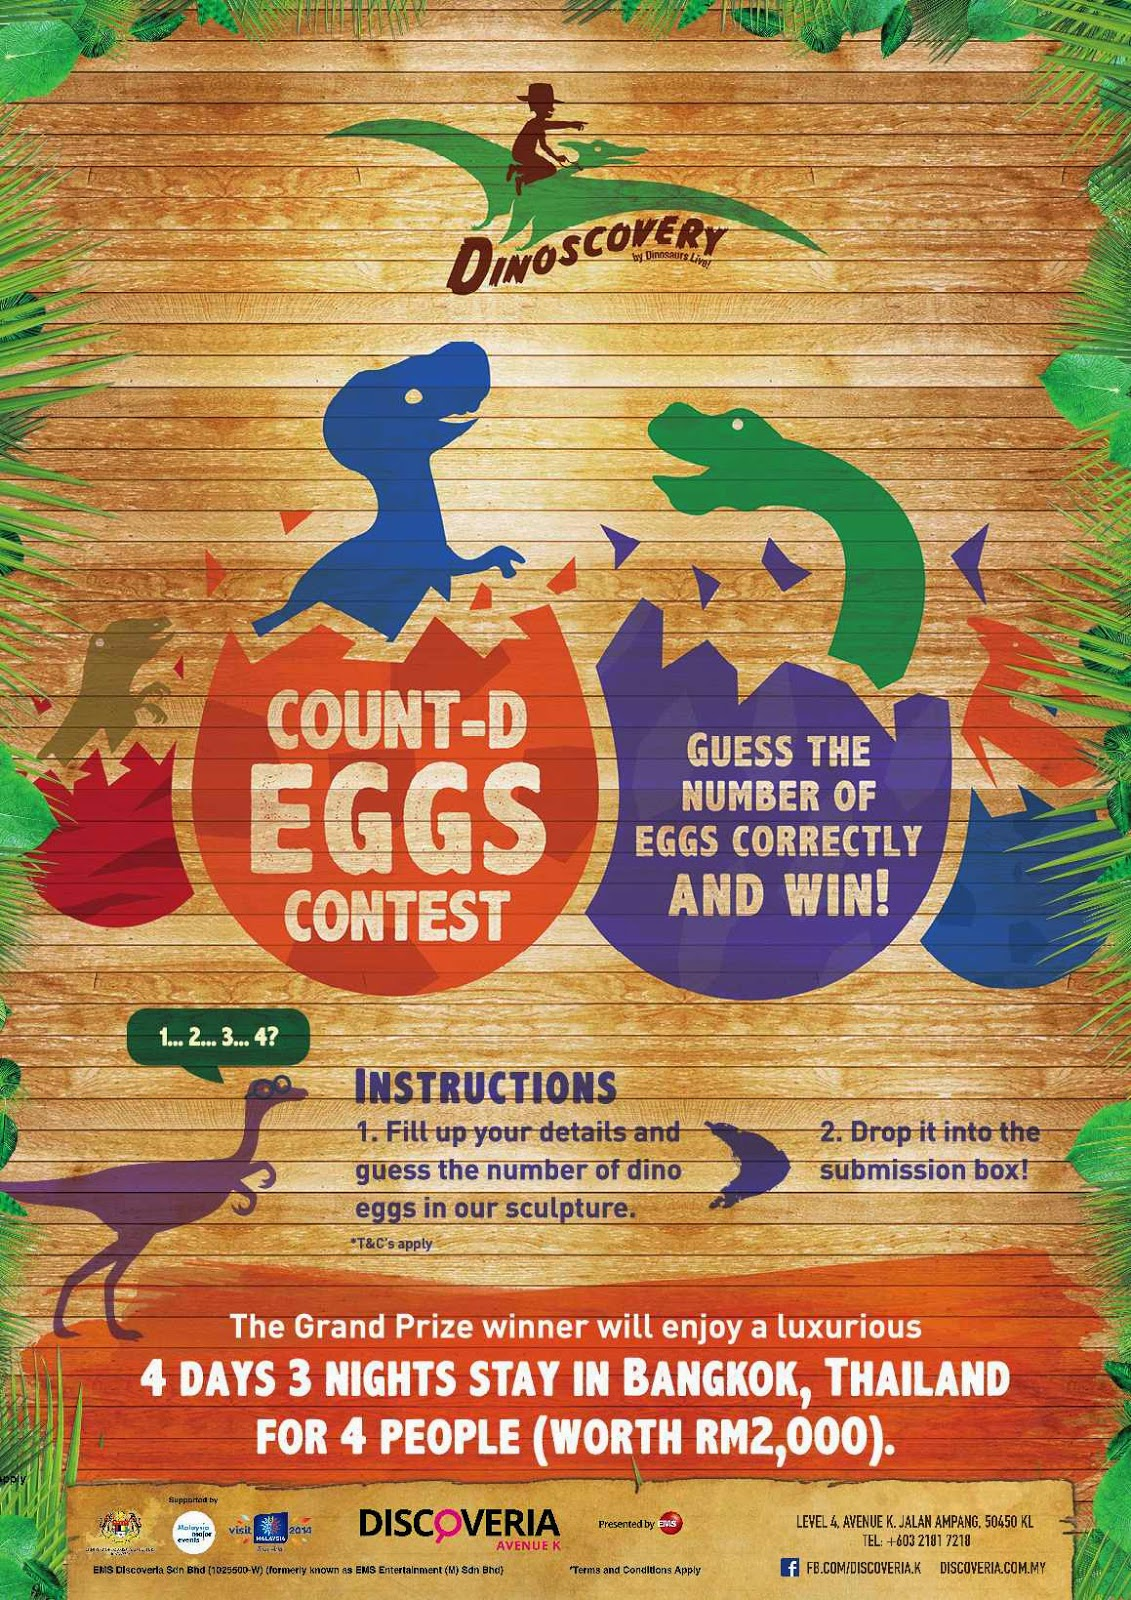 dinoscovery_by_dinosaurs_live_contest_win_trip_to_bangkok